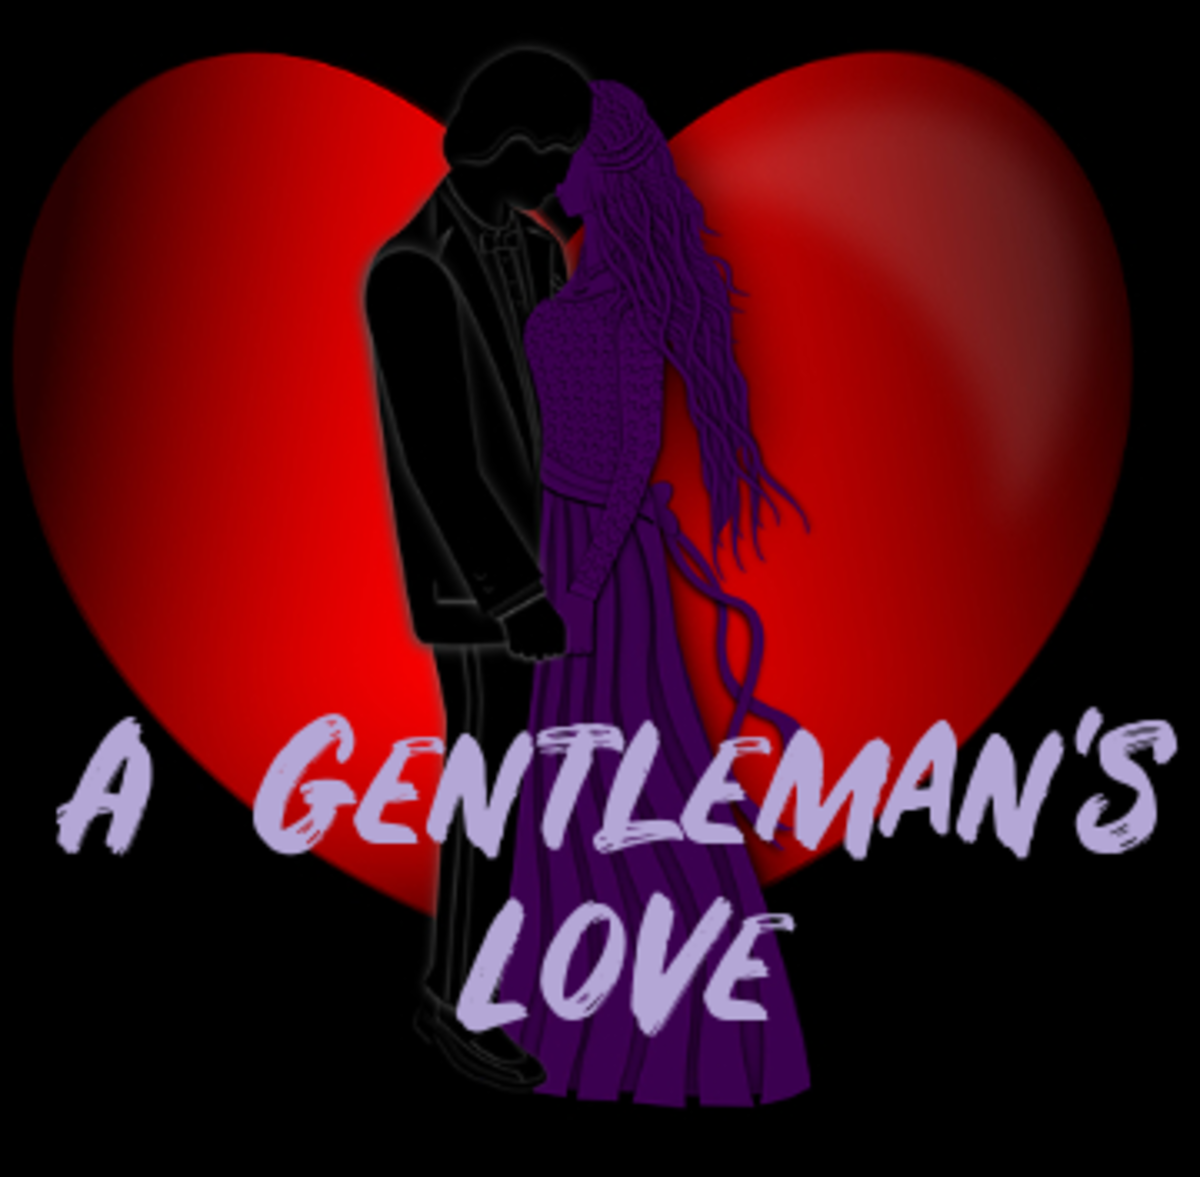 Poem: A Gentleman's Love